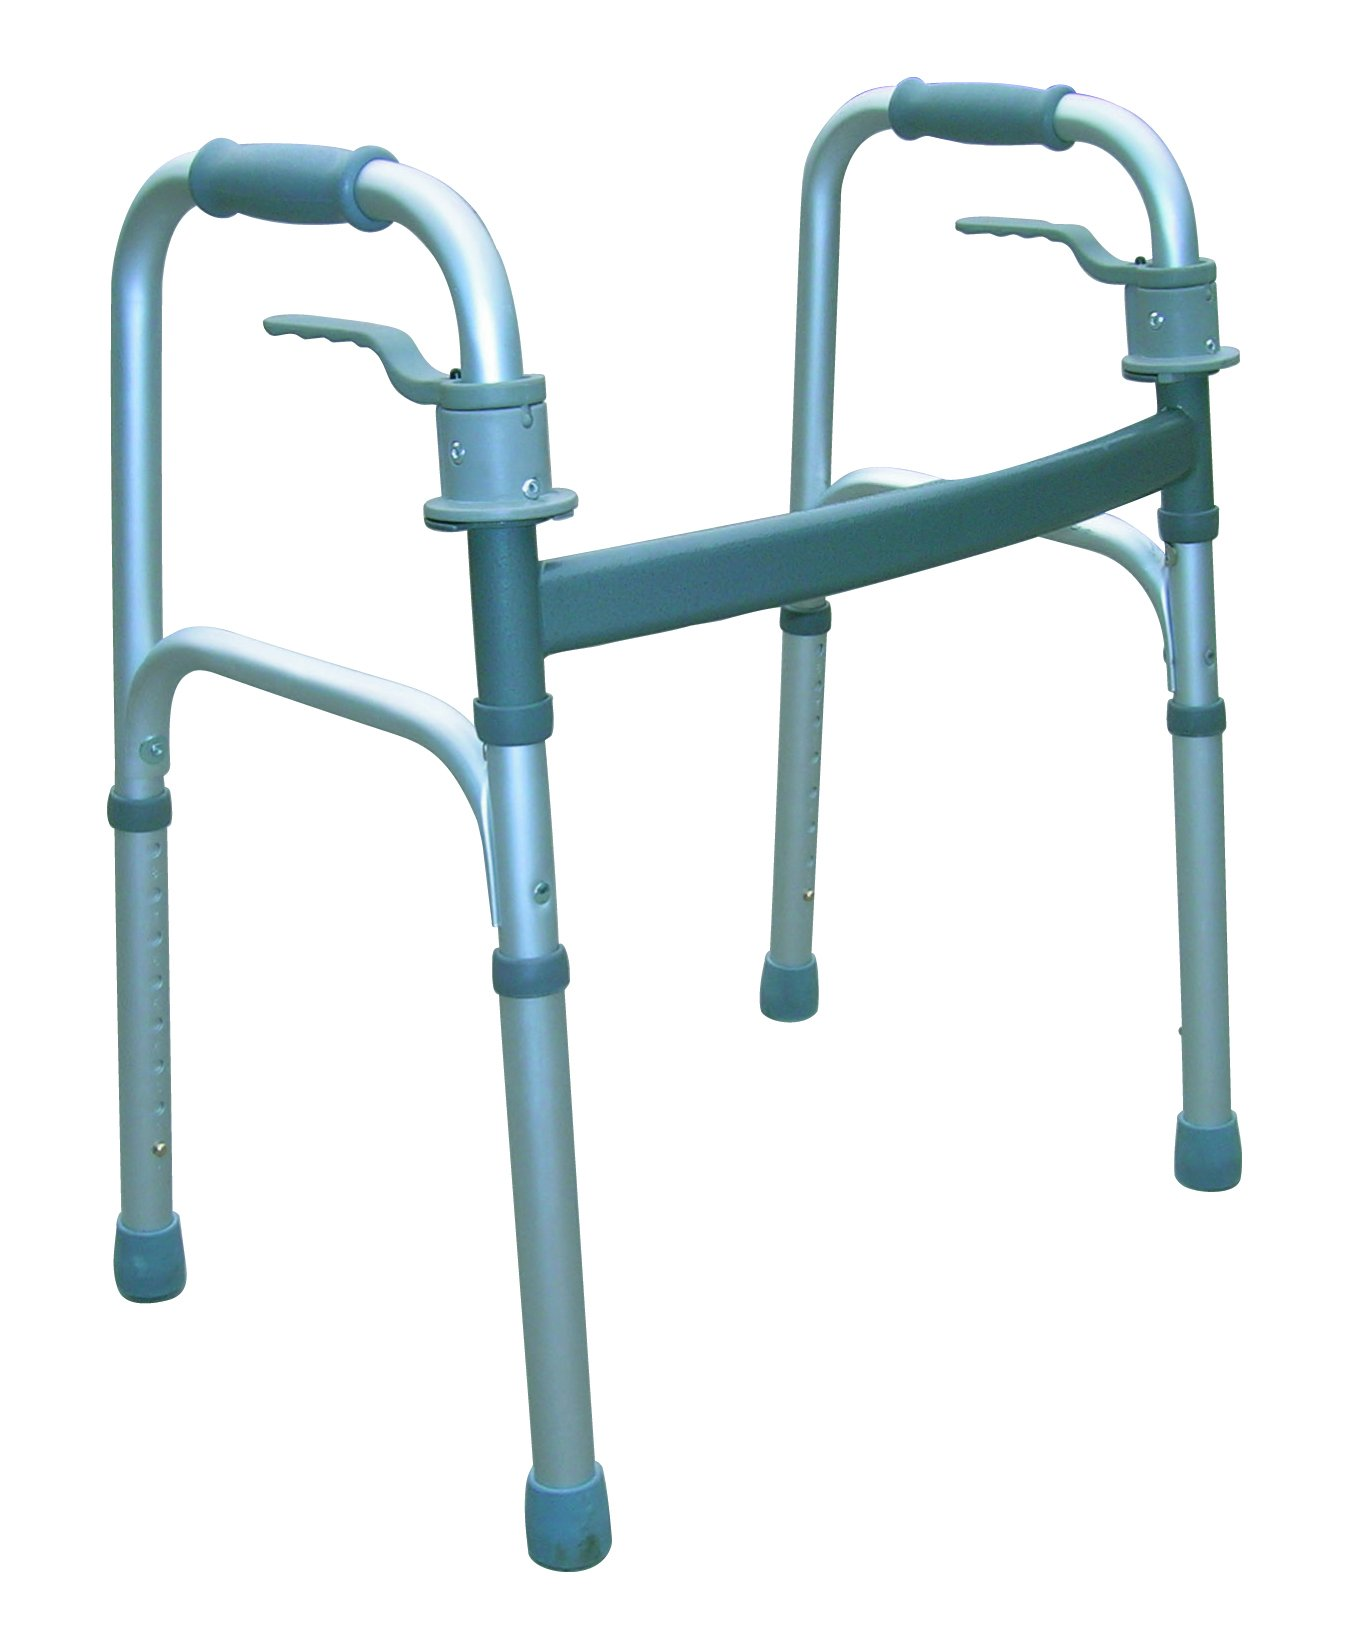 Essential Medical Supply W1258 Endurance Junior Trigger Walker, Silver, 1 Inch